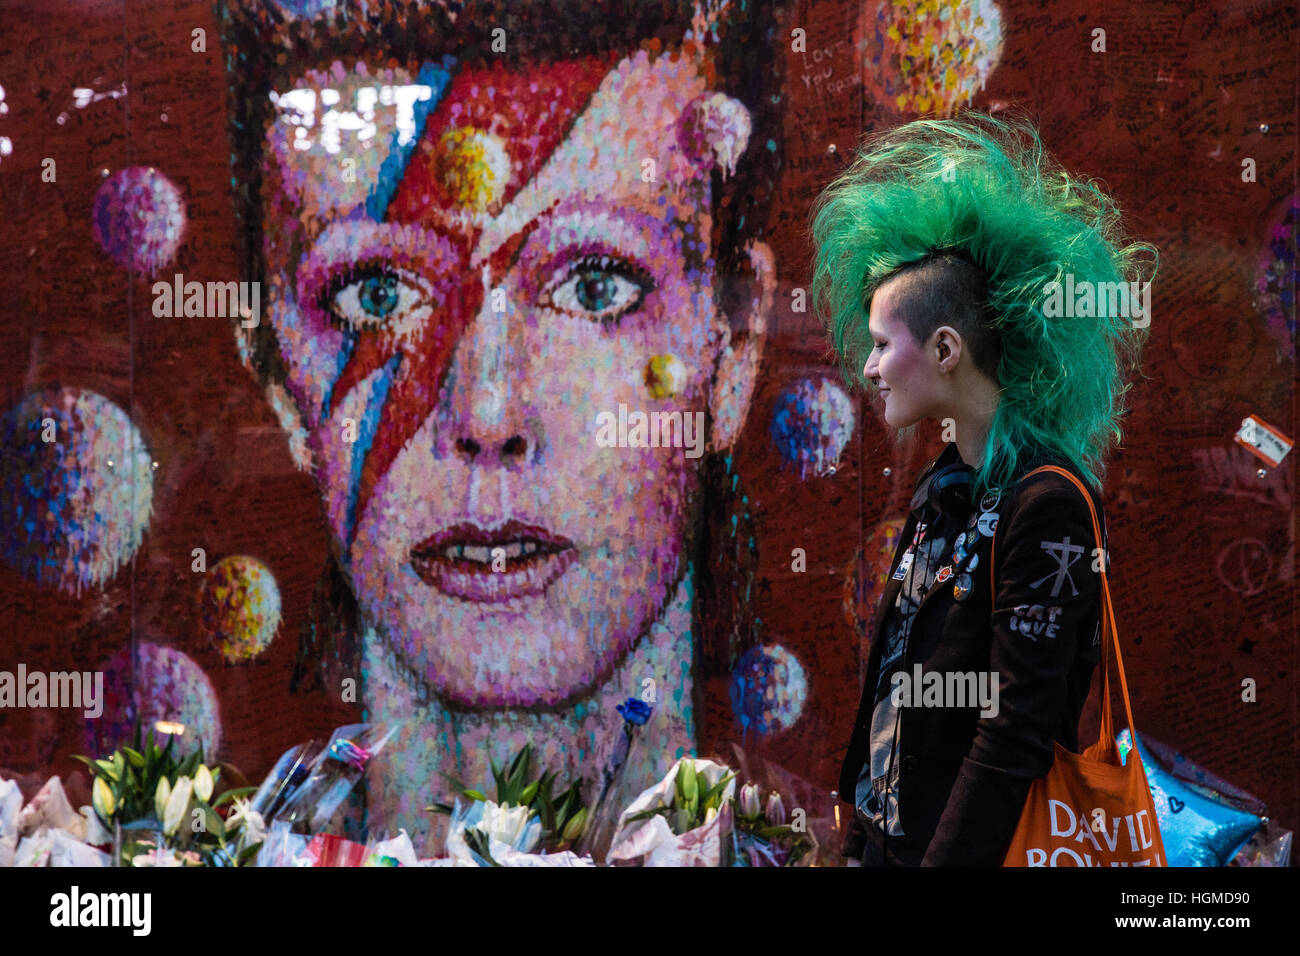 London, UK. 10th January, 2017.  A girl with a green mohican haircut pays tribute to David Bowie in front of a mural - Stock Image